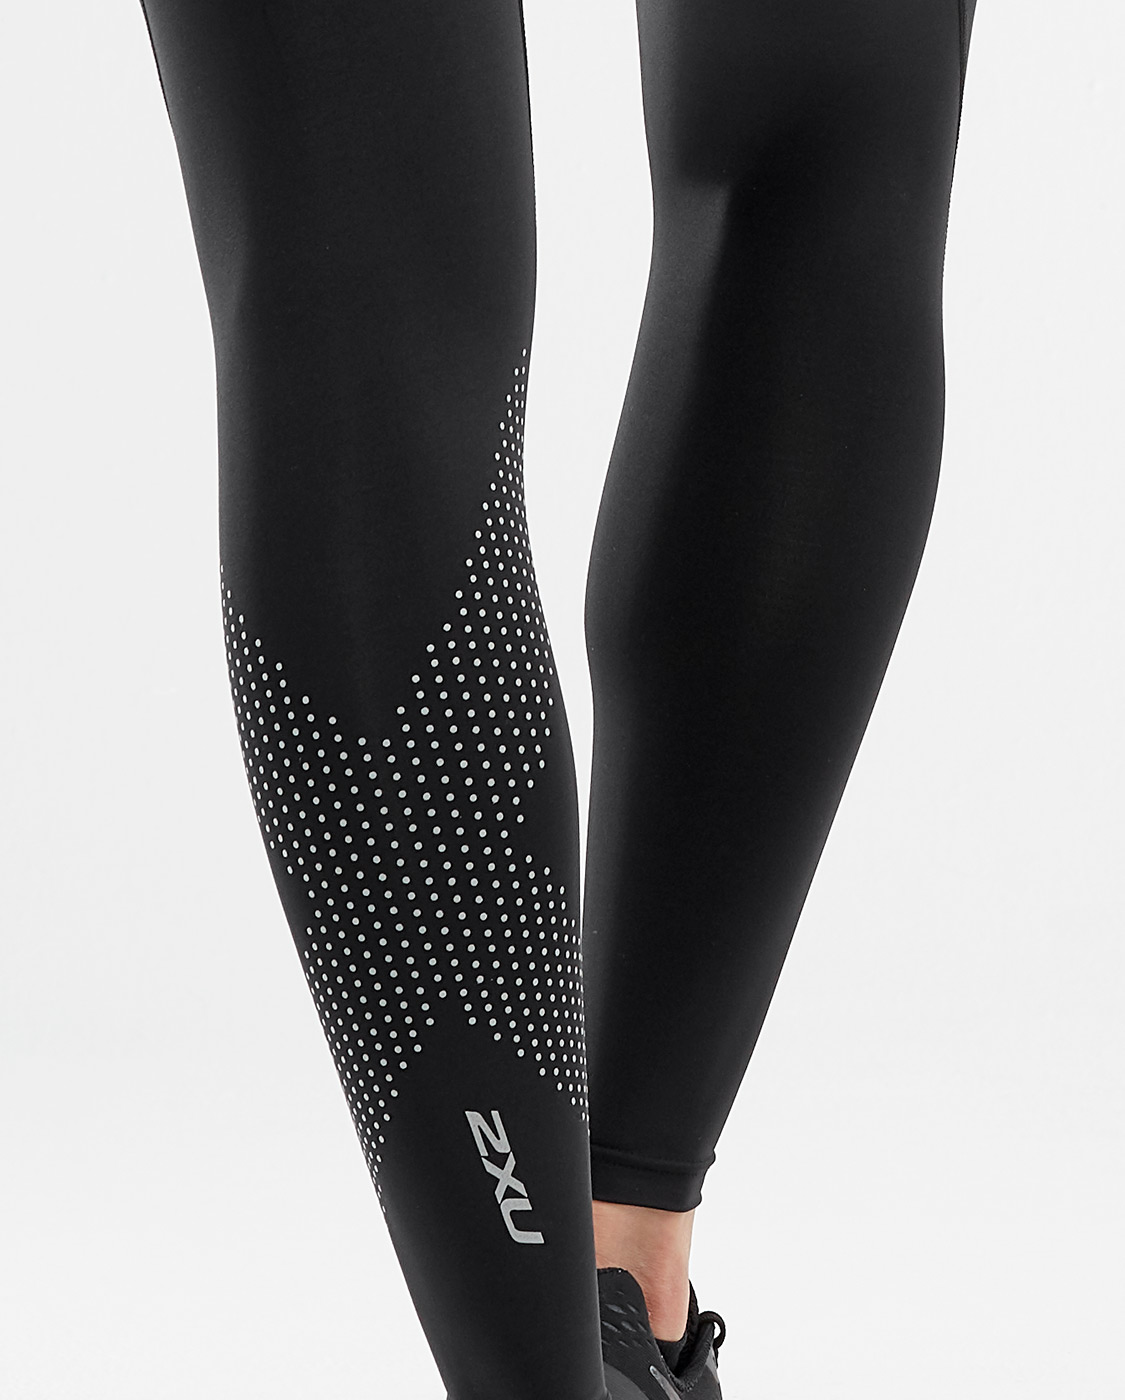 2XU Women's Mid-Rise Compression Tight - Black/Dotted Reflective Logo